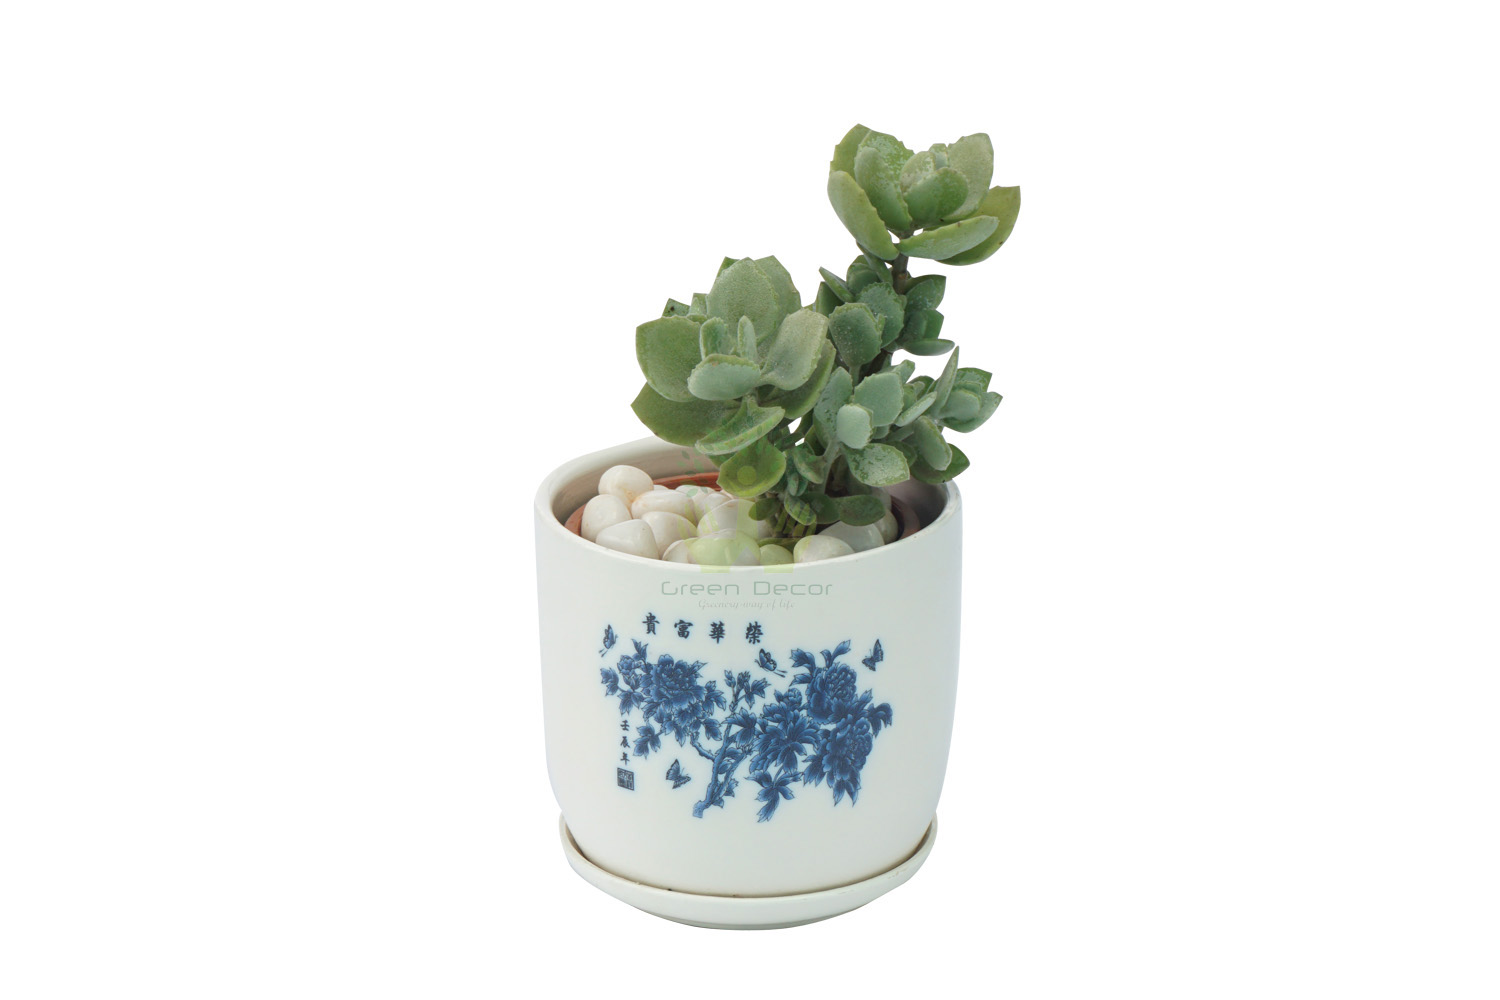 Buy Echeveria Plant Front View, White Pots and Seeds in Delhi NCR by the best online nursery shop Greendecor.